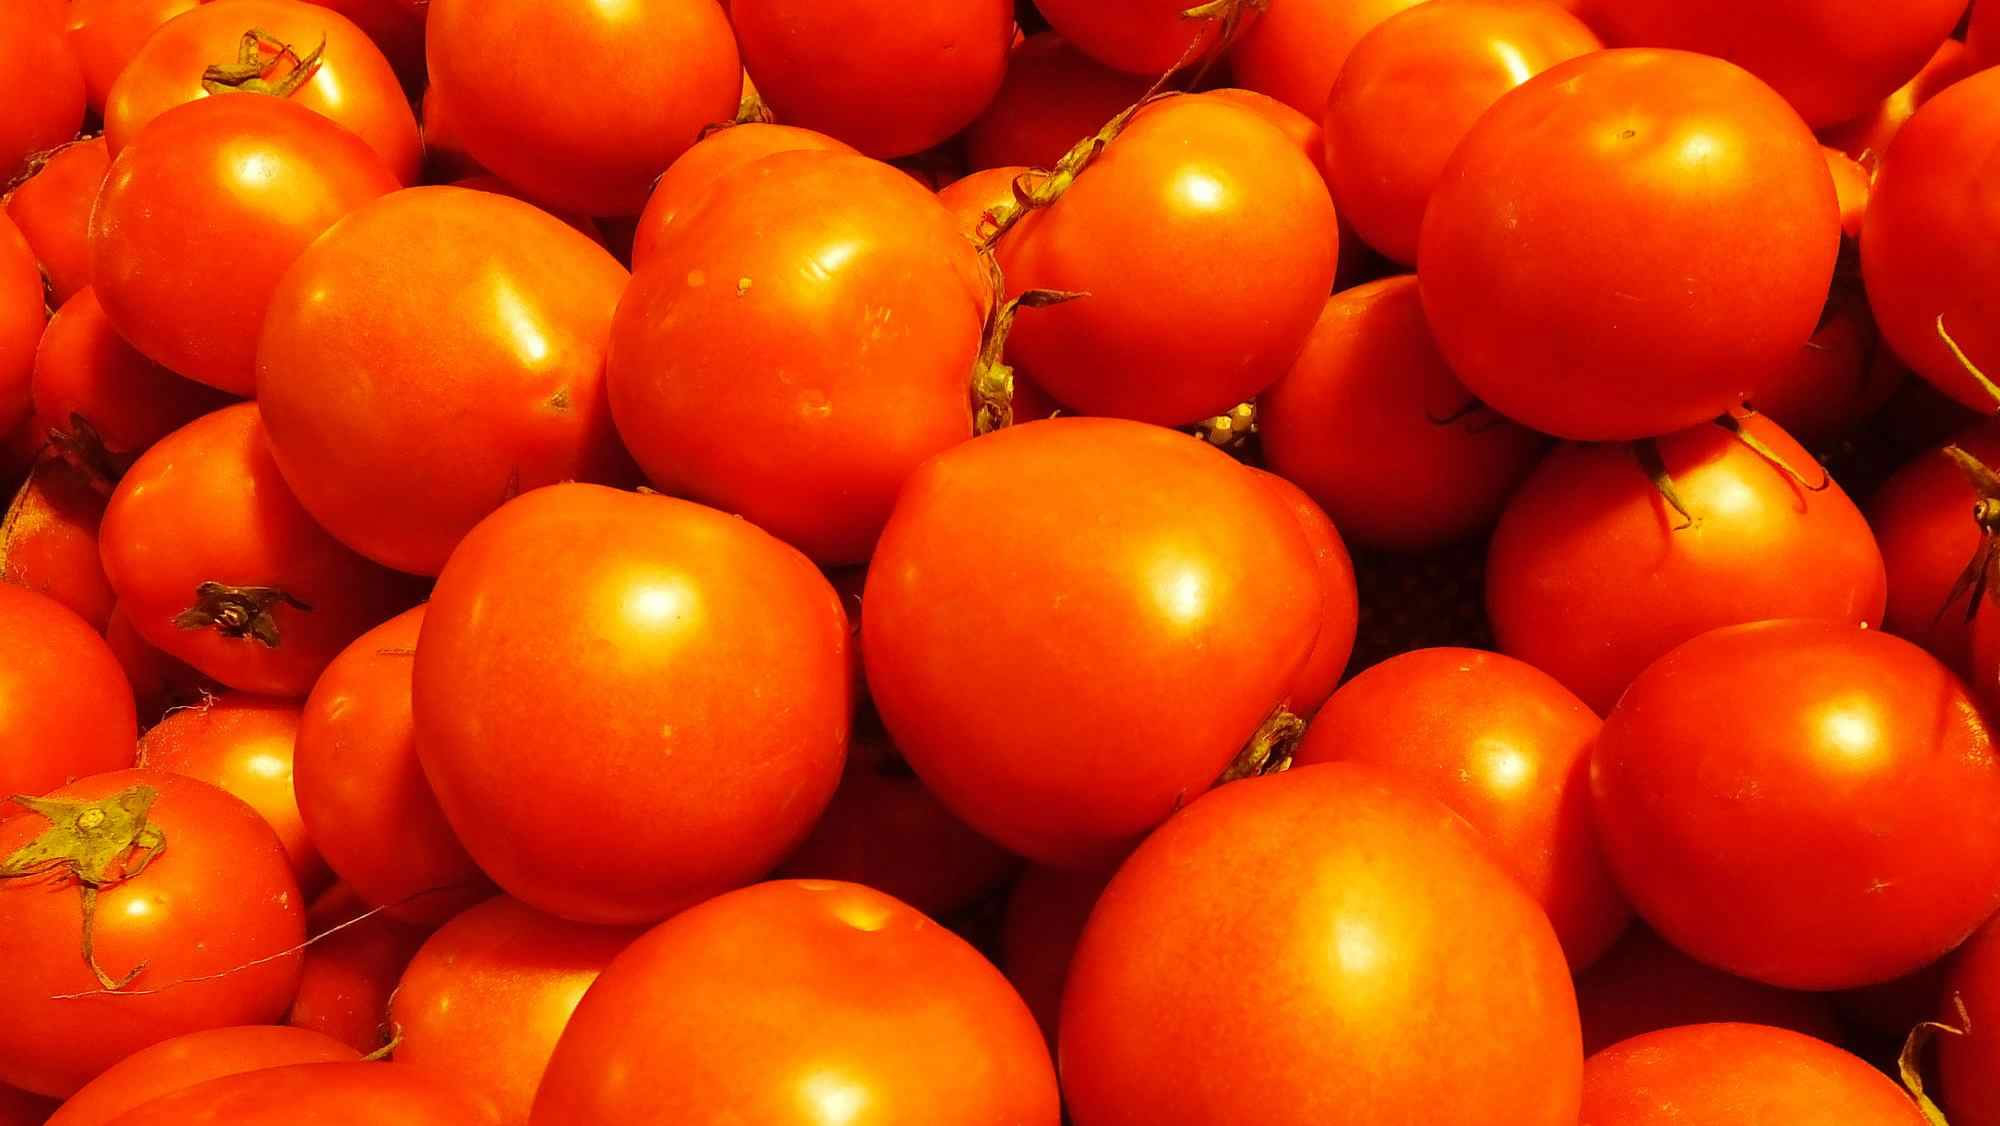 Planting greenhouse tomatoes helps thousands escape poverty